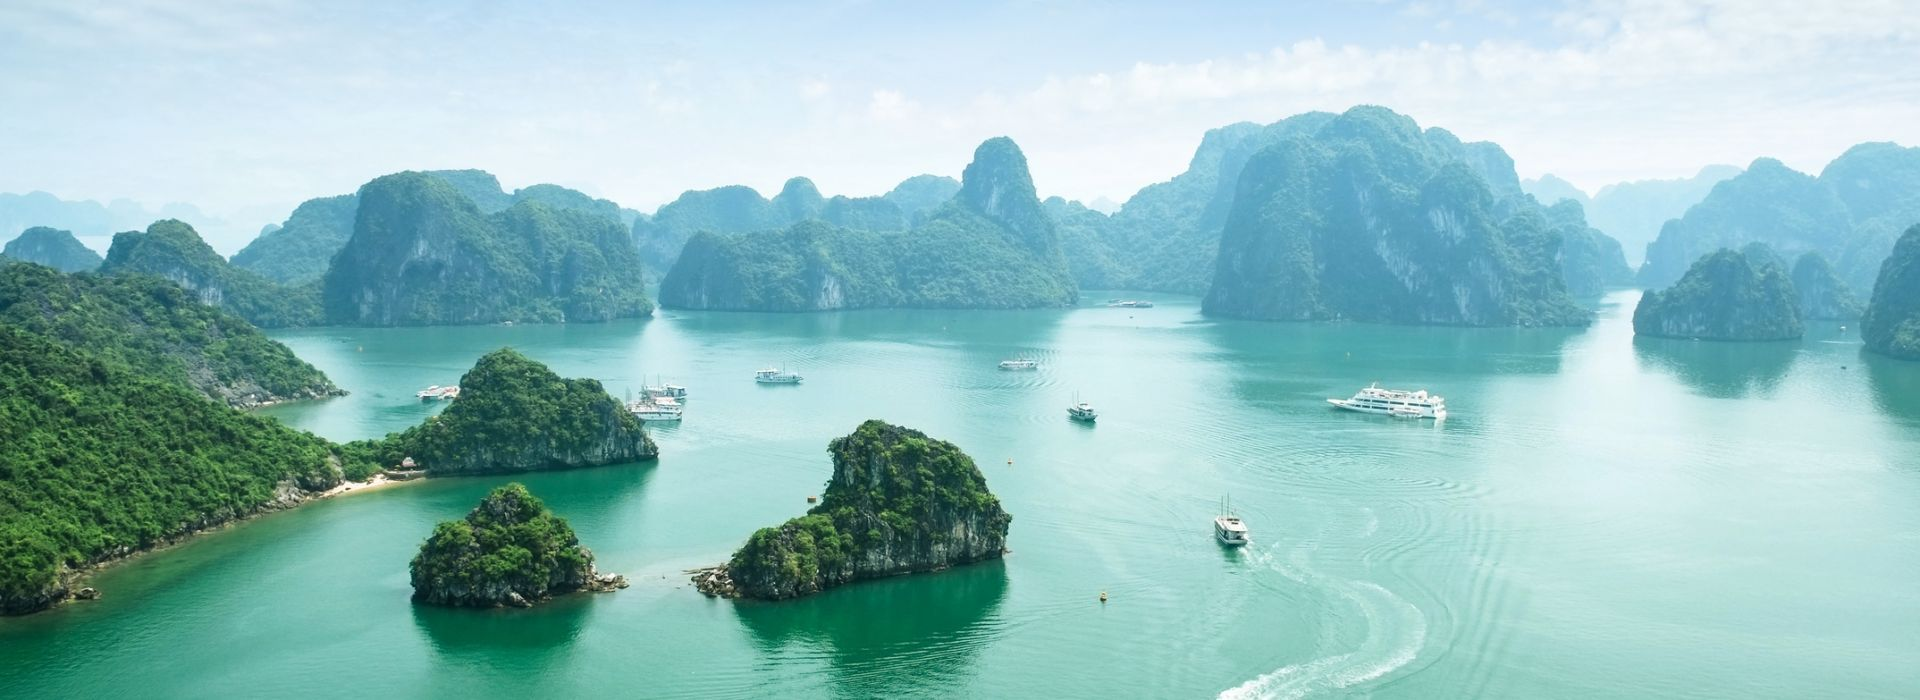 Beach, romance, getaways and relaxation Tours in Hanoi